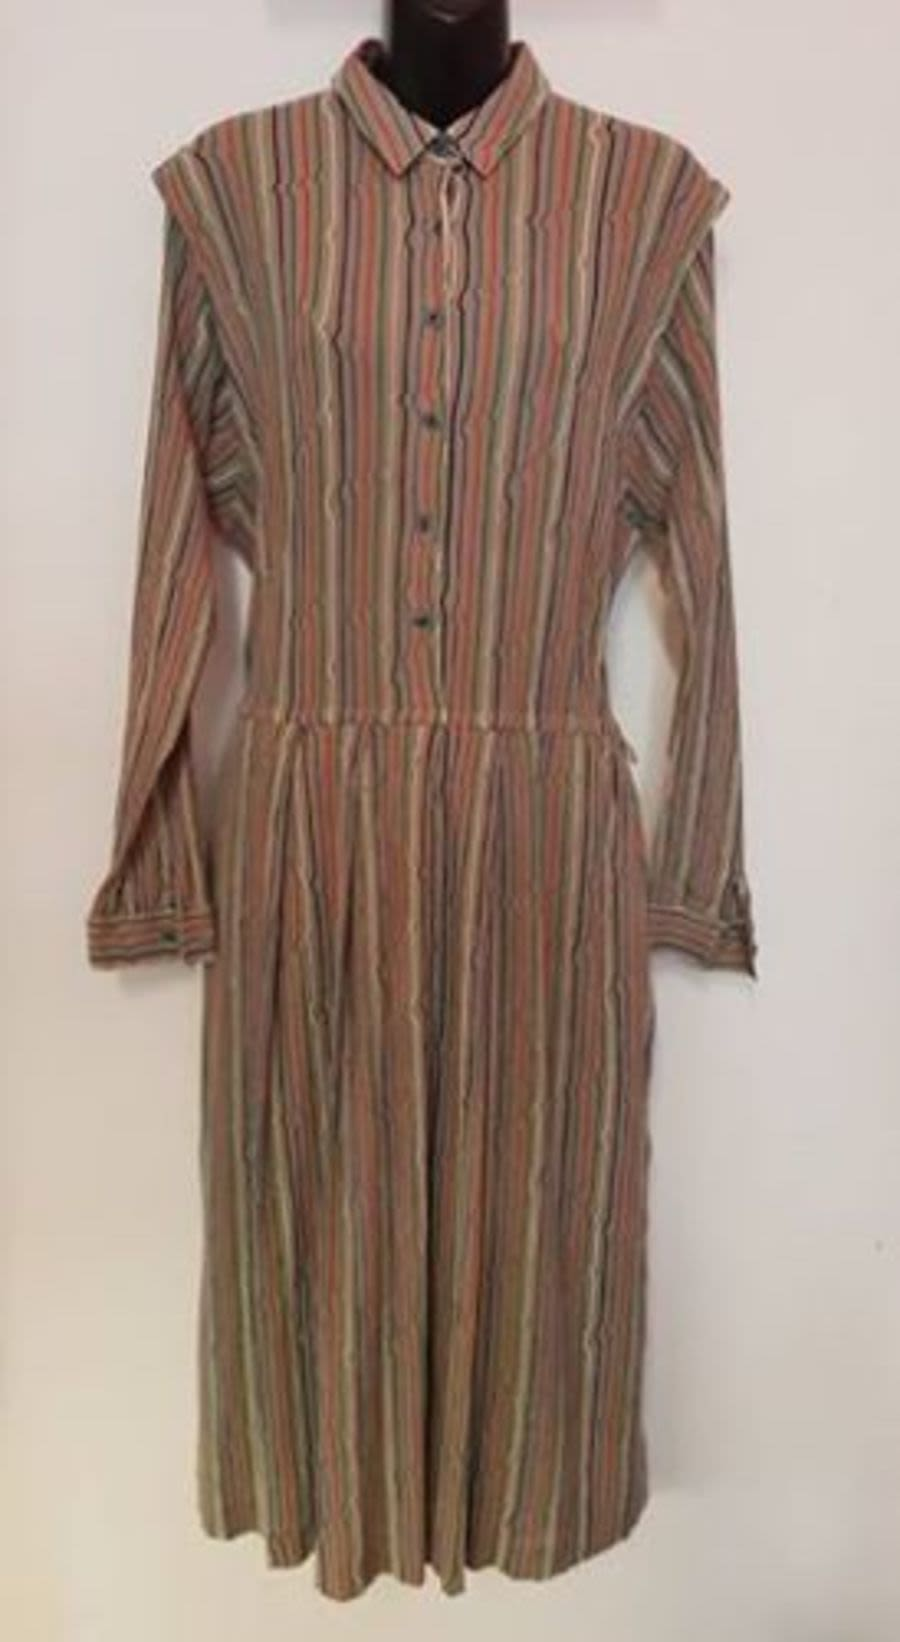 Vintage Womens 1970's Colorful Pinstriped Shirt-dress